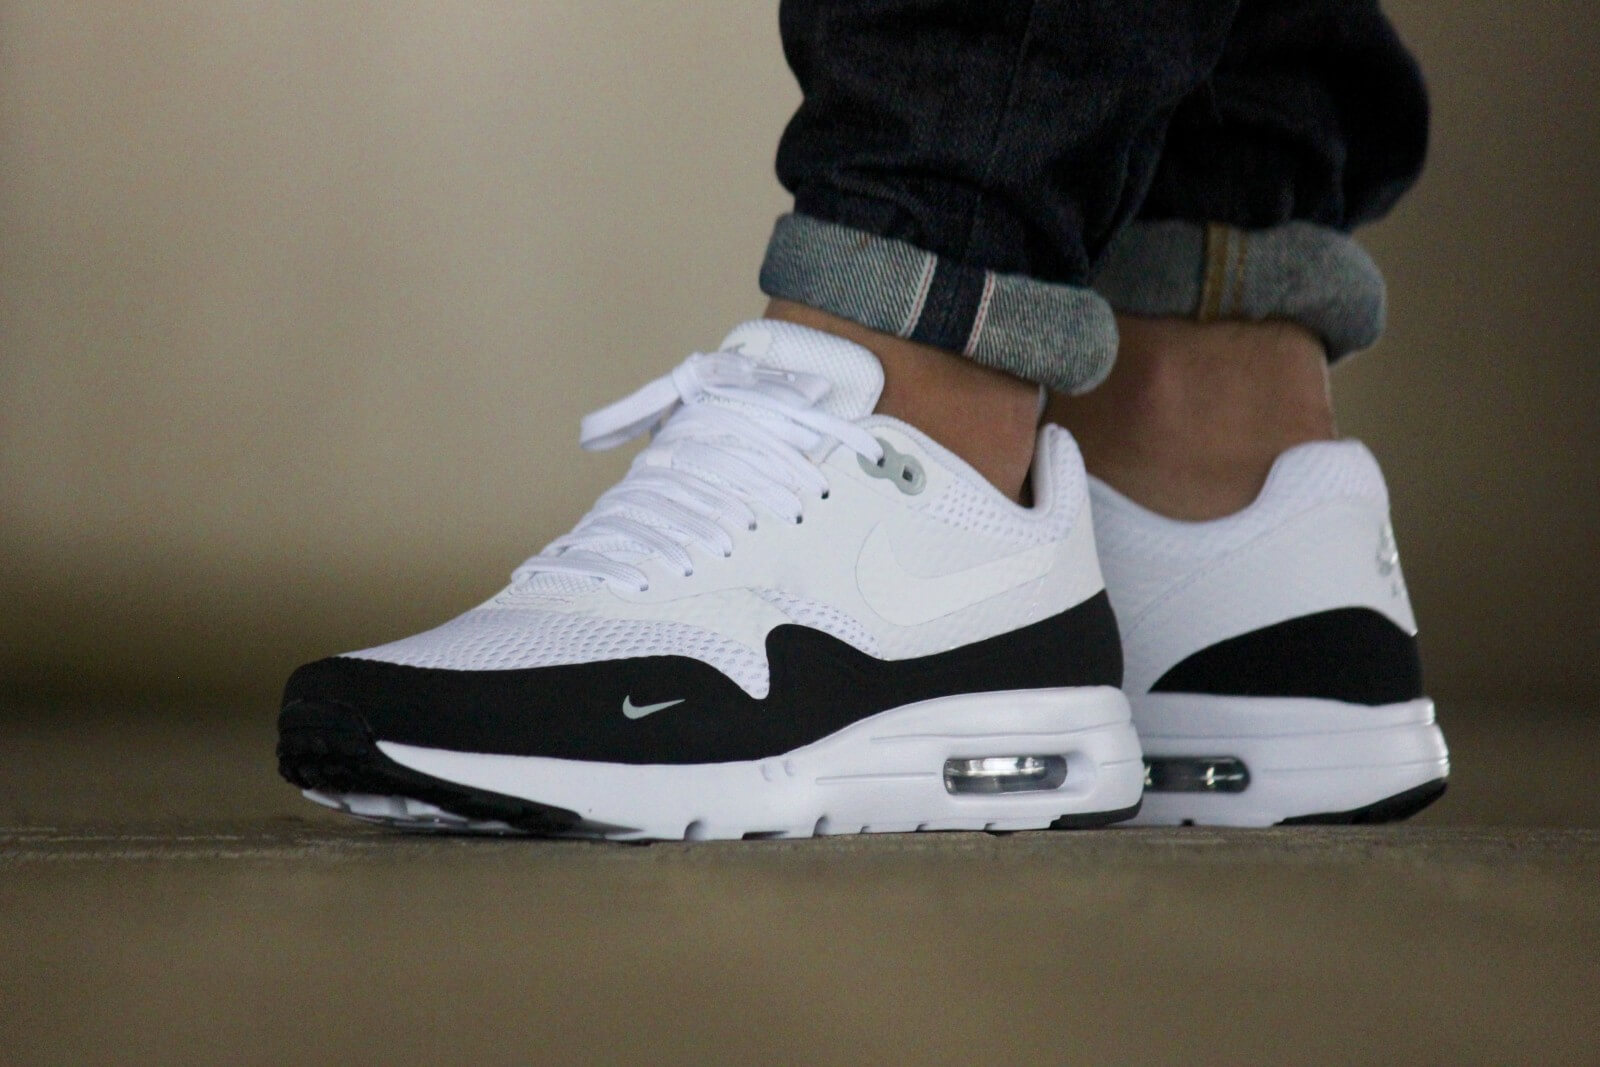 Nike Air Max 1 White Black Wolf Grey leoncamier.co.uk